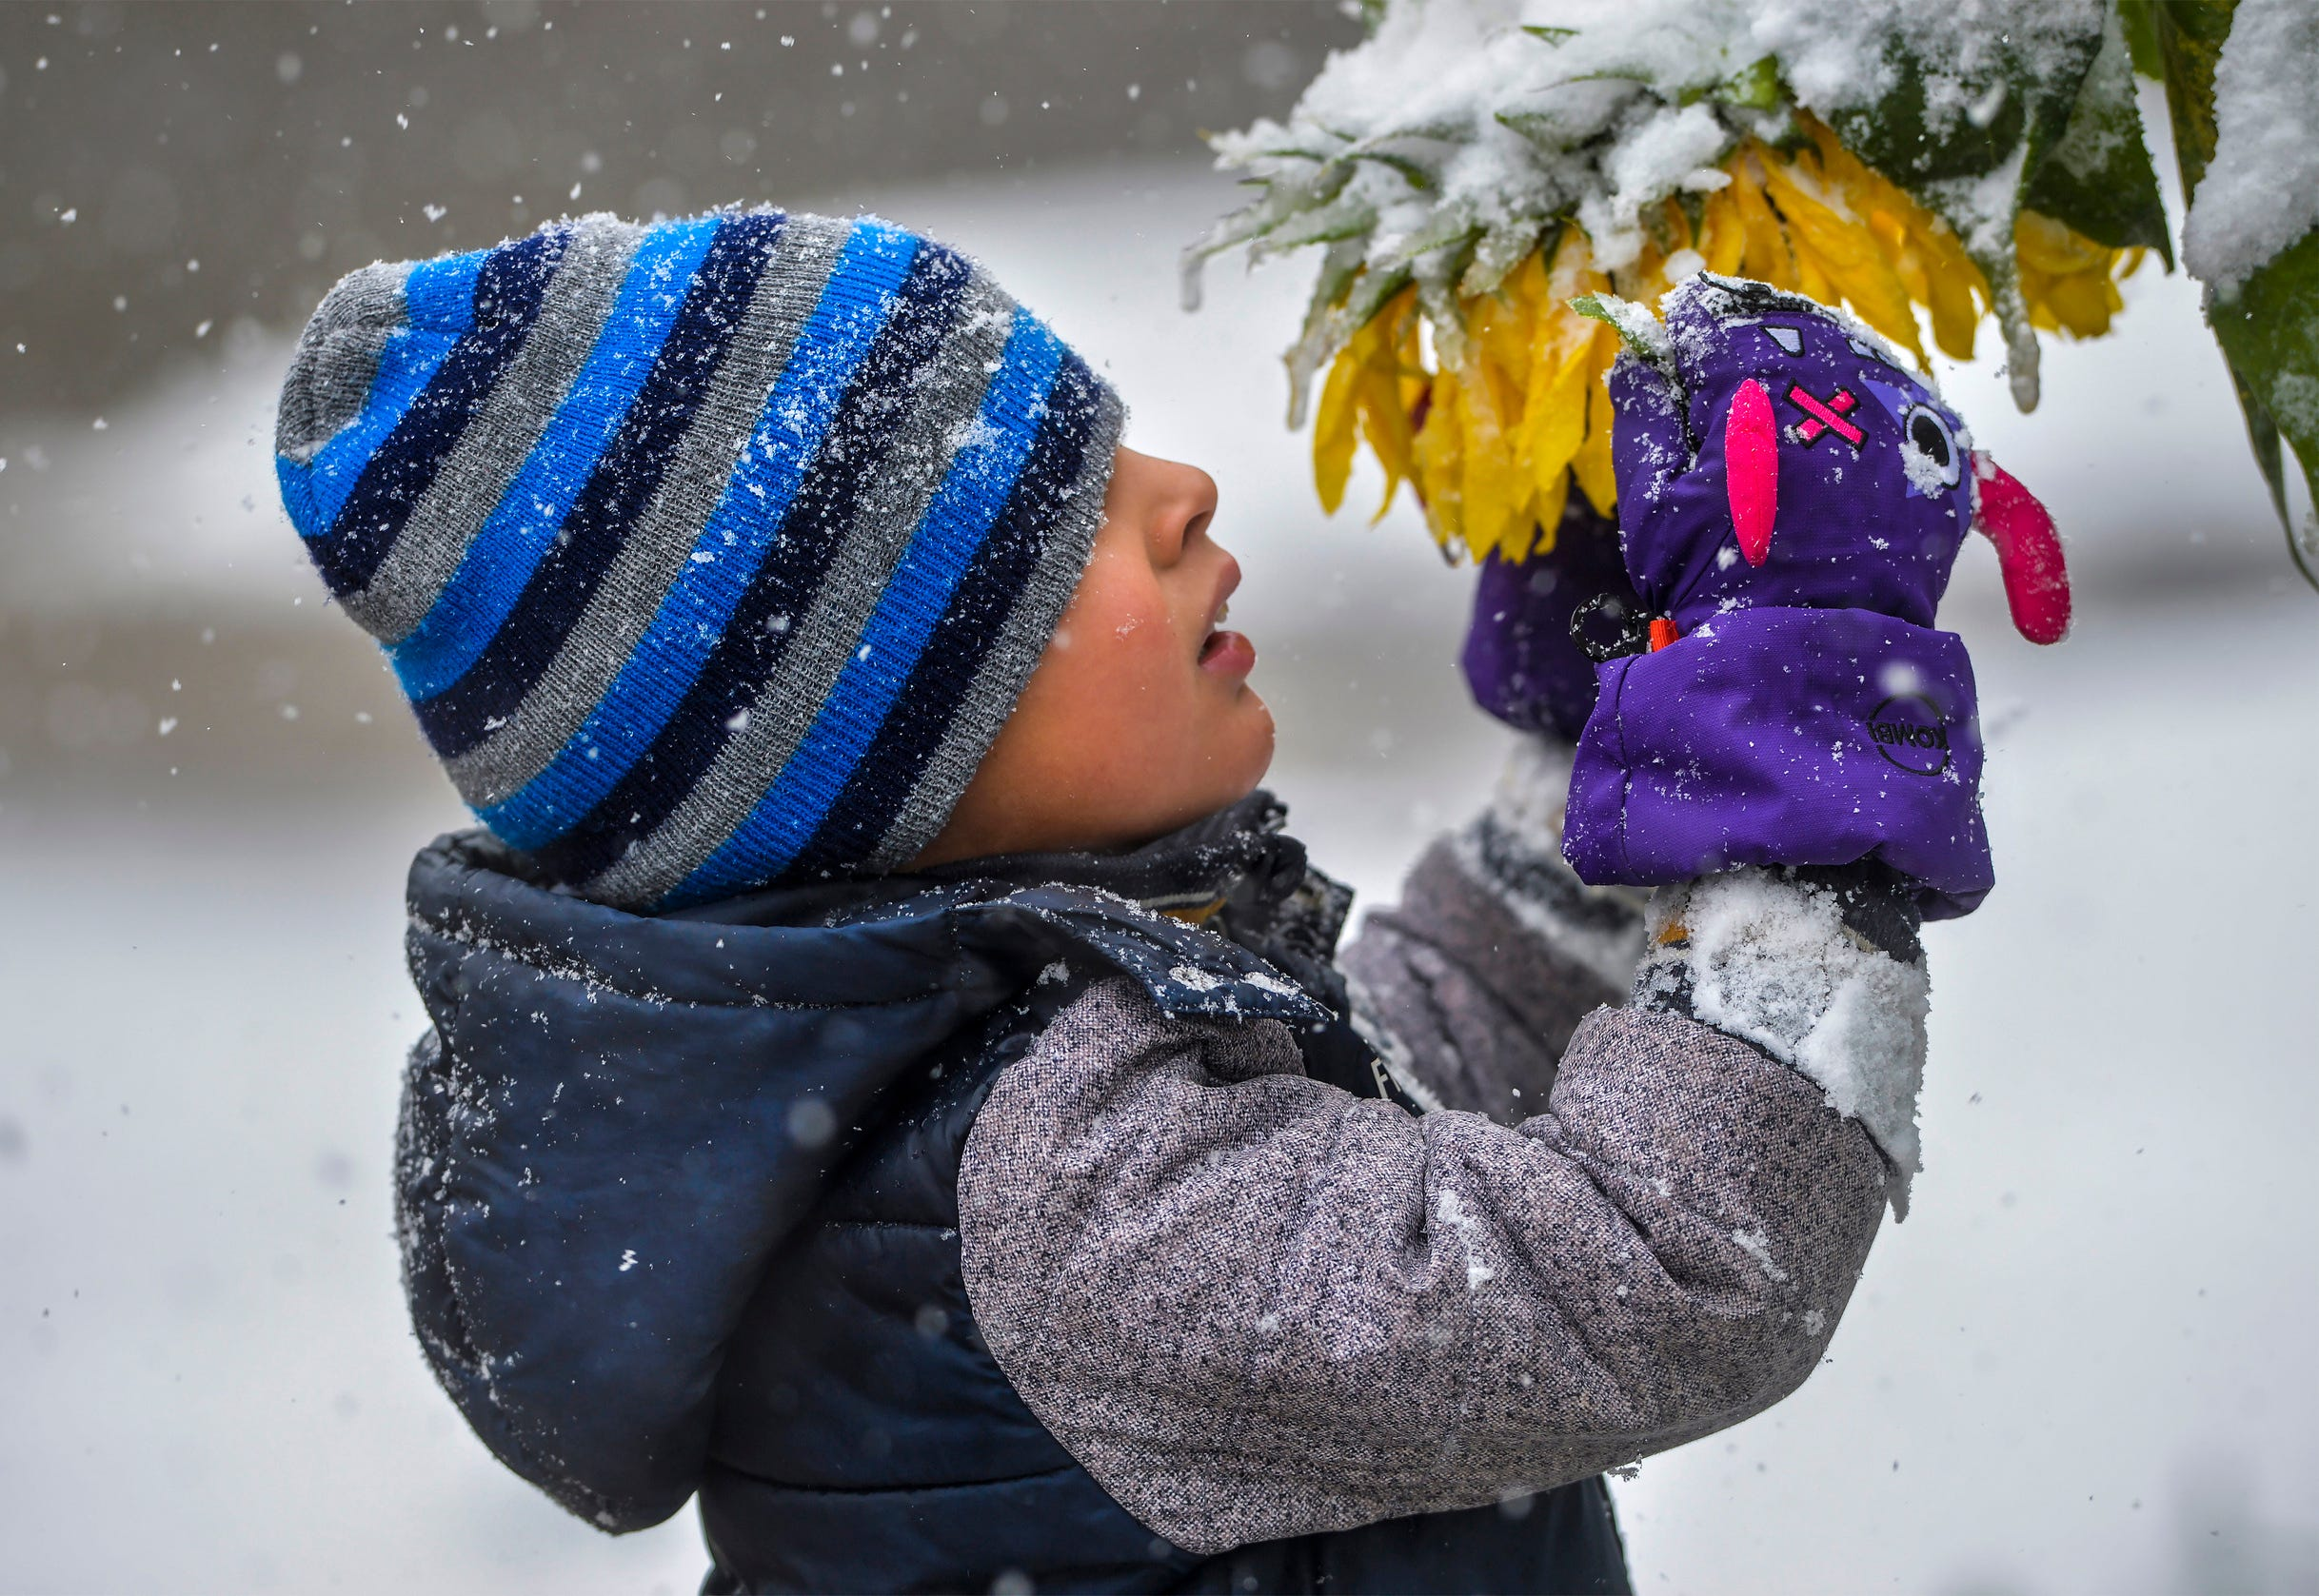 'Historic' winter storm dumps 2 feet of snow, smashes records in West